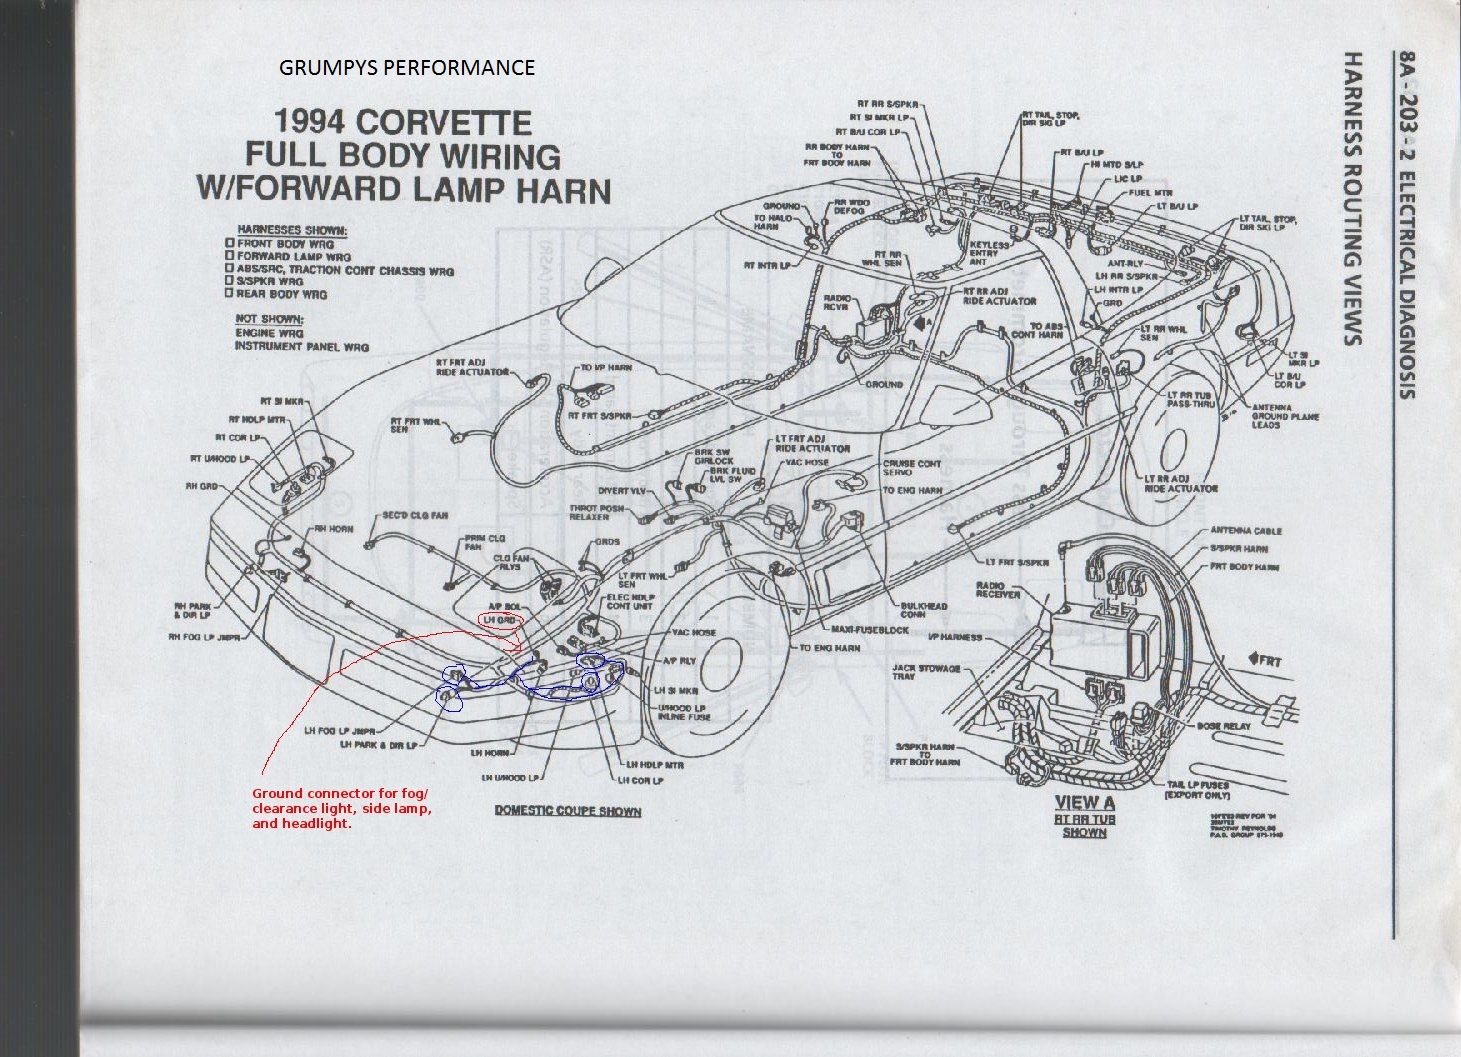 1994 Corvette Wiring Diagram Another Blog About 03 Chrysler Town And Country Fuse Box 28 Images